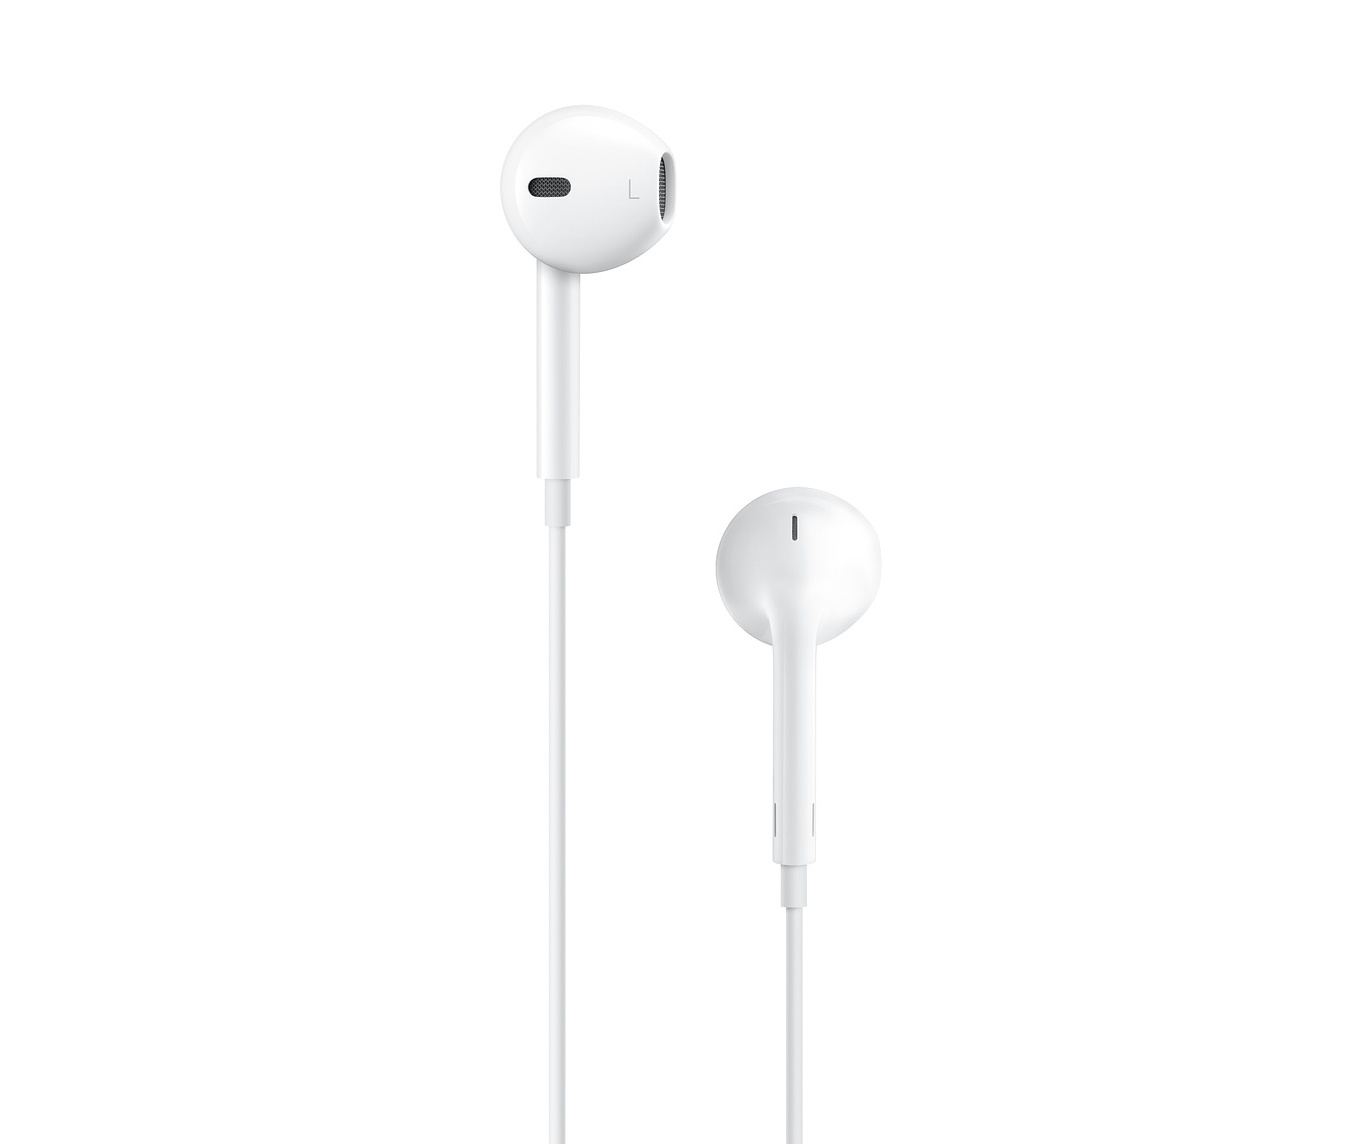 Гарнитура Iphone 5 EarPods